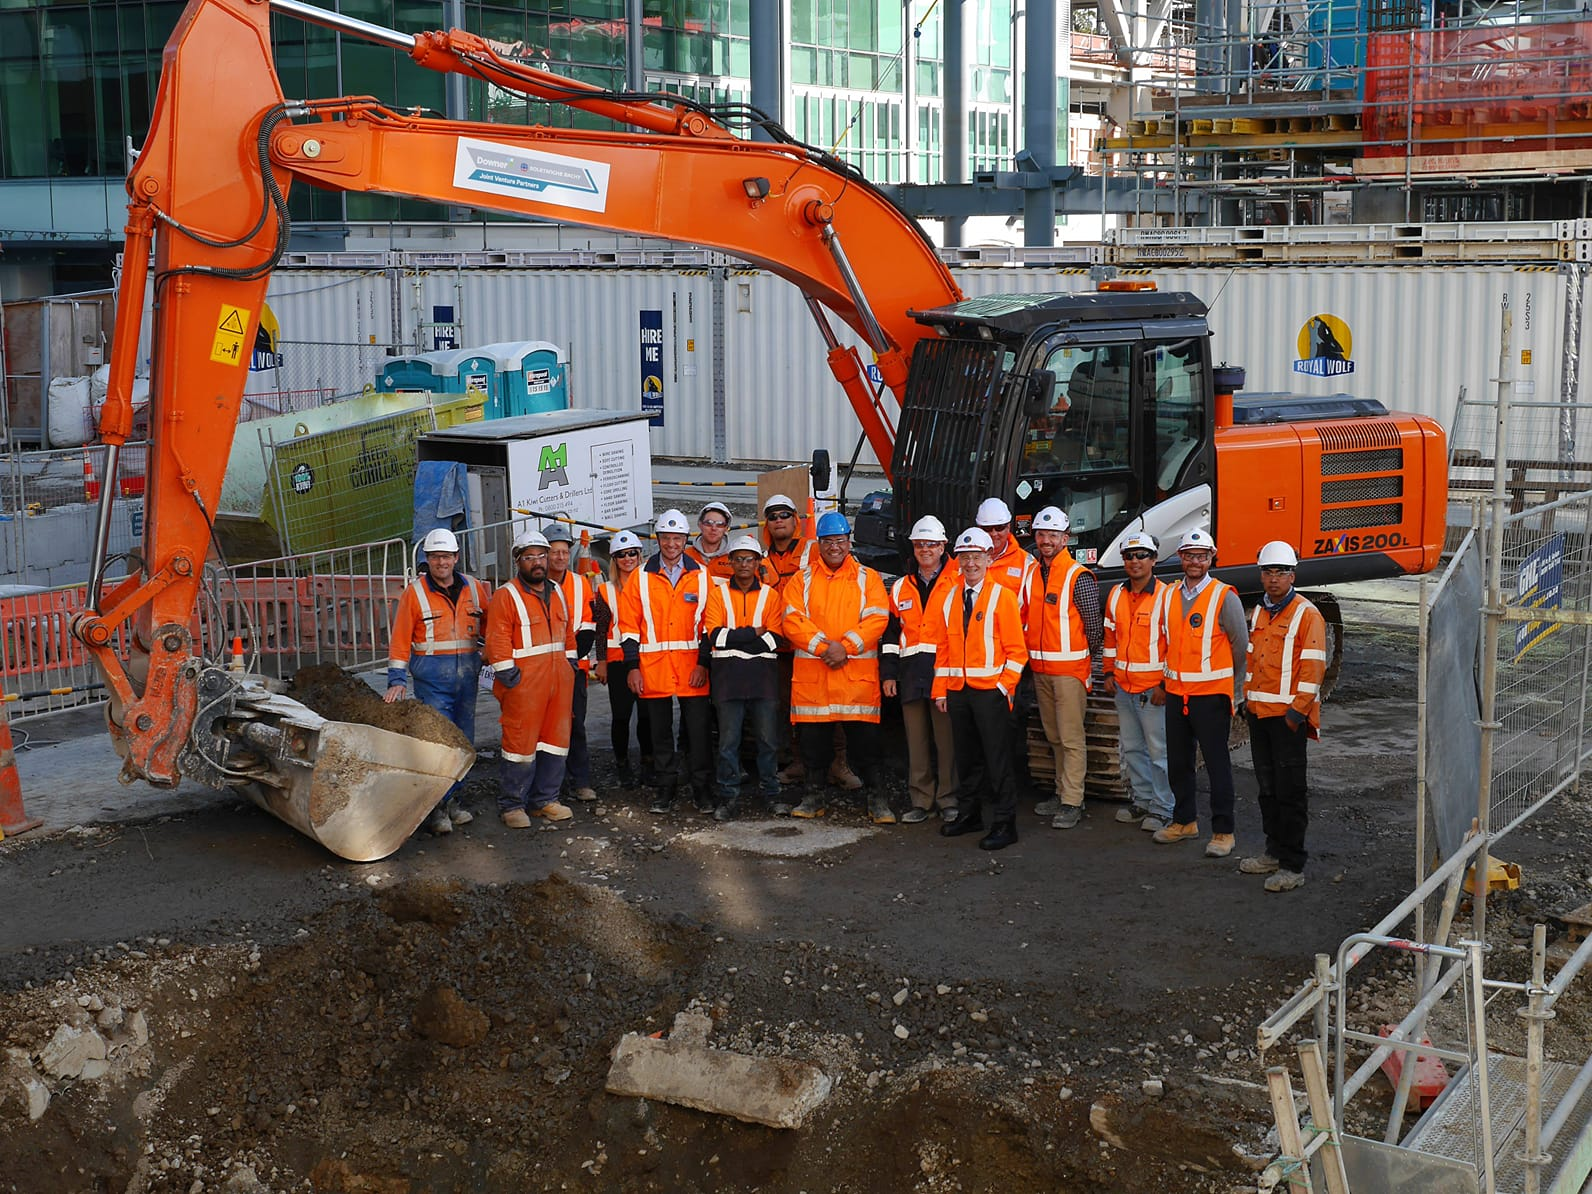 Team from CRL and DSBJV in safety gear beside large excavator, marking the start of the CRL Britomart tunnel excavations